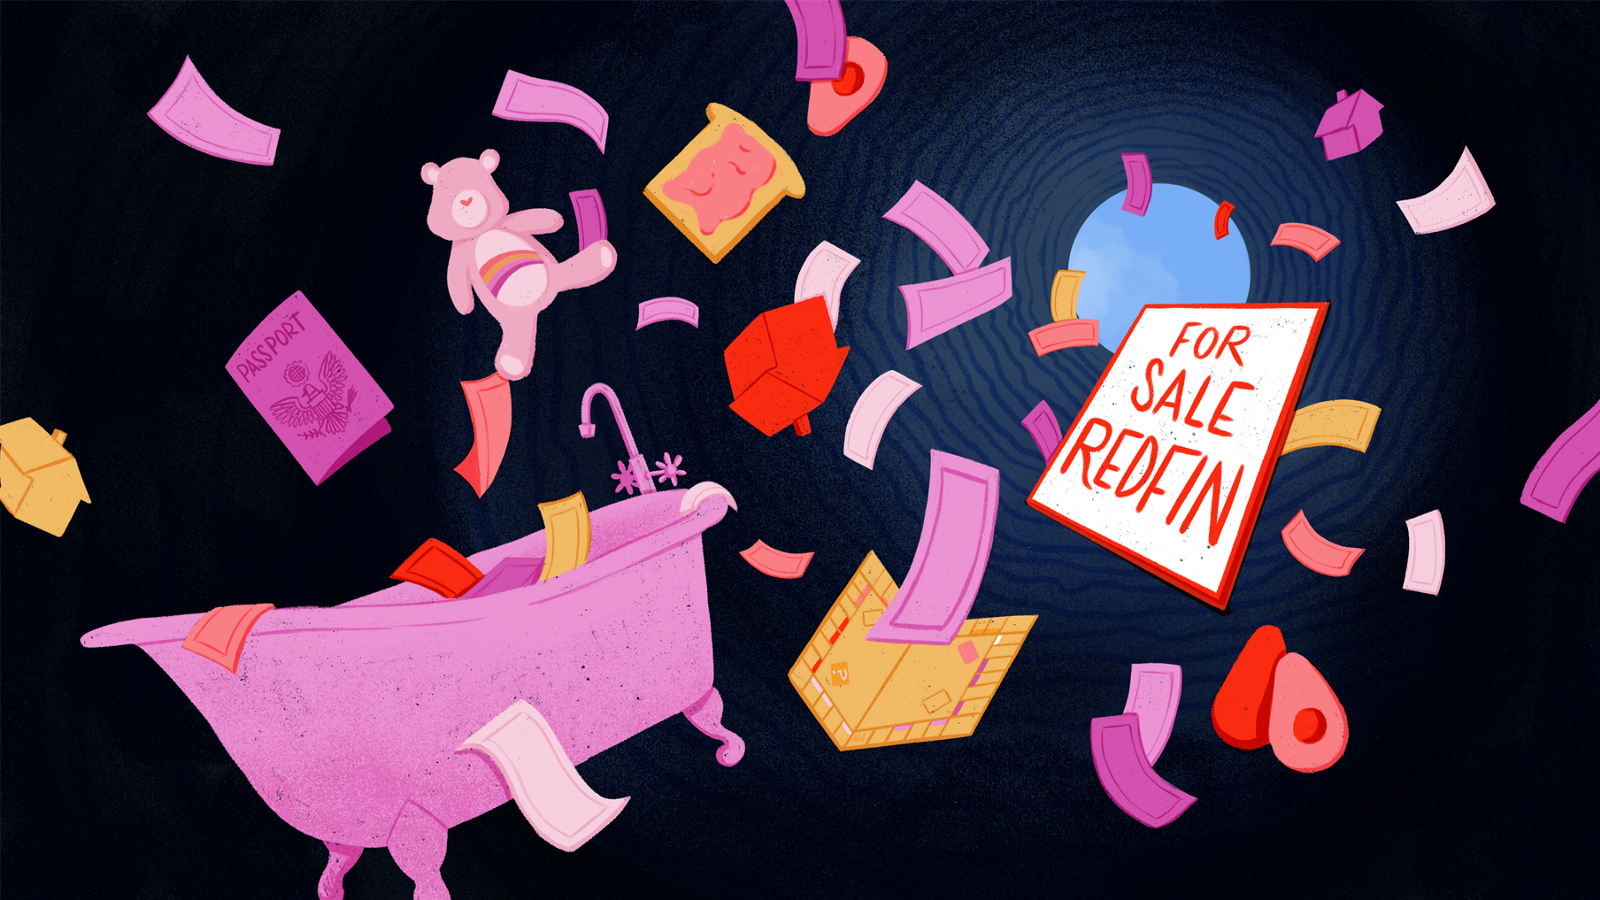 Illustration of pink pieces of paper, a passport, a clawfoot tub, a for sale sign, + a red avocado in a tunnel.